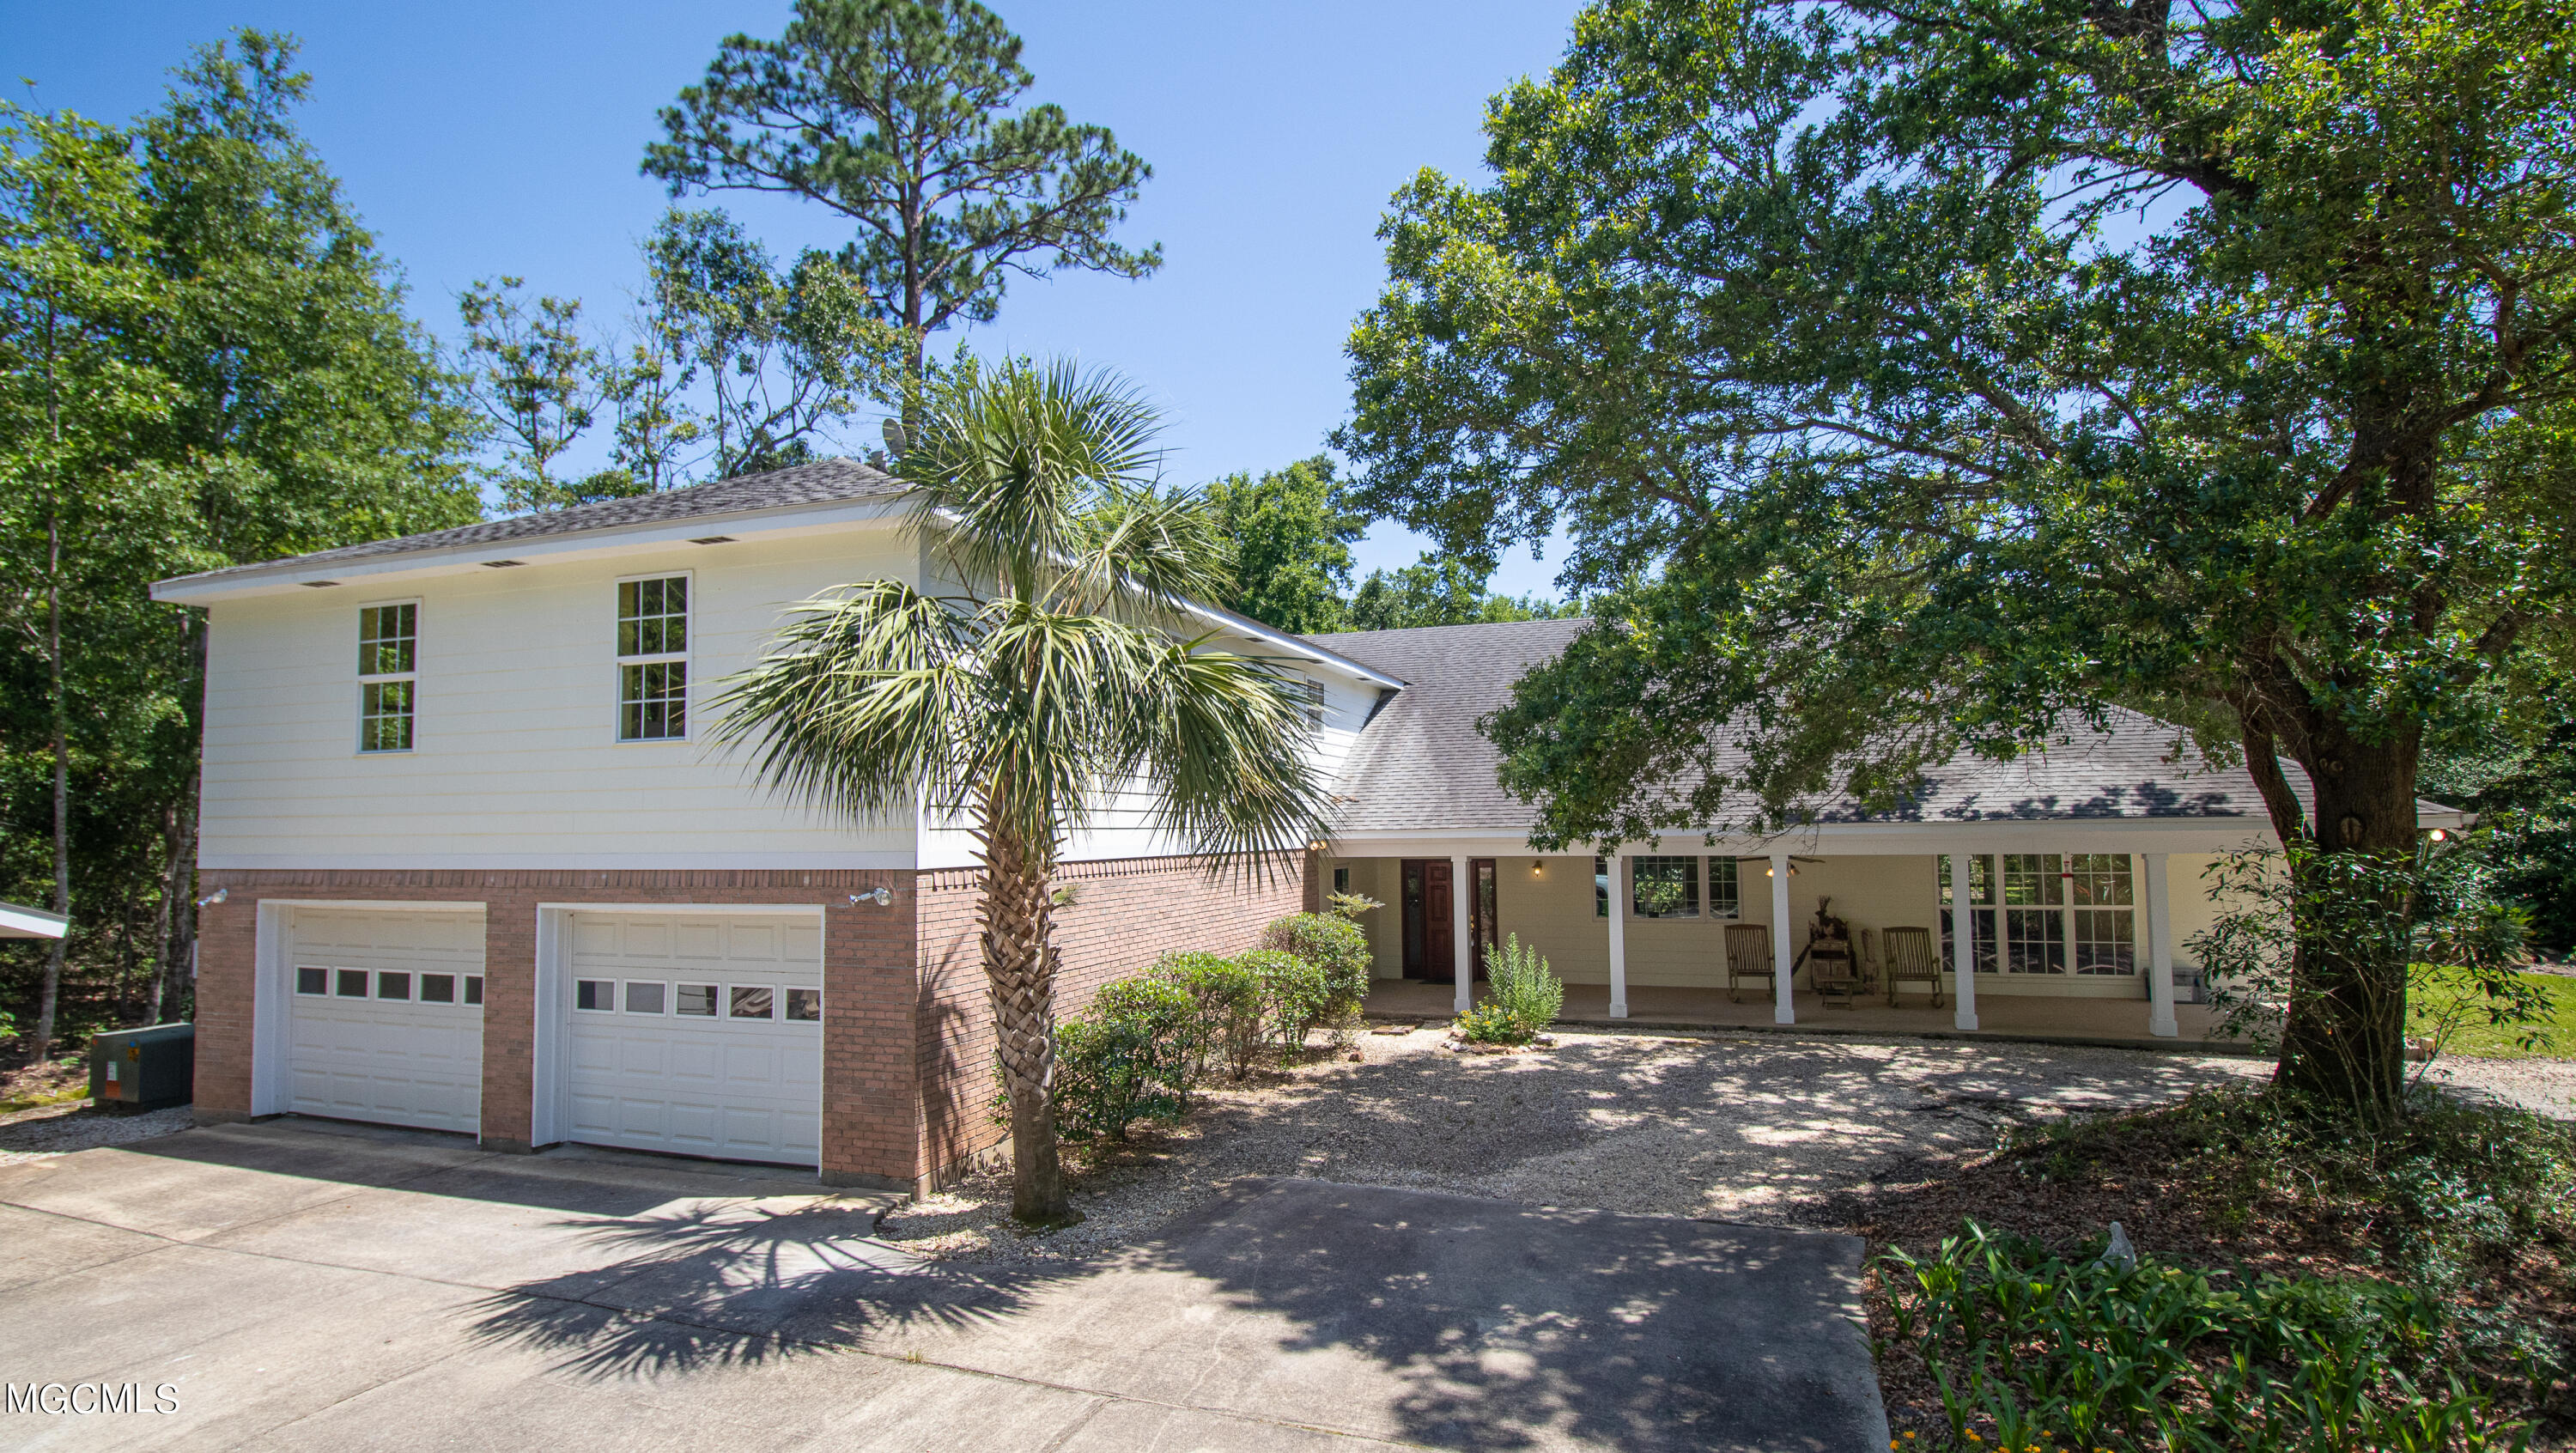 422 St Augustine Ave, Long Beach, MS 39560